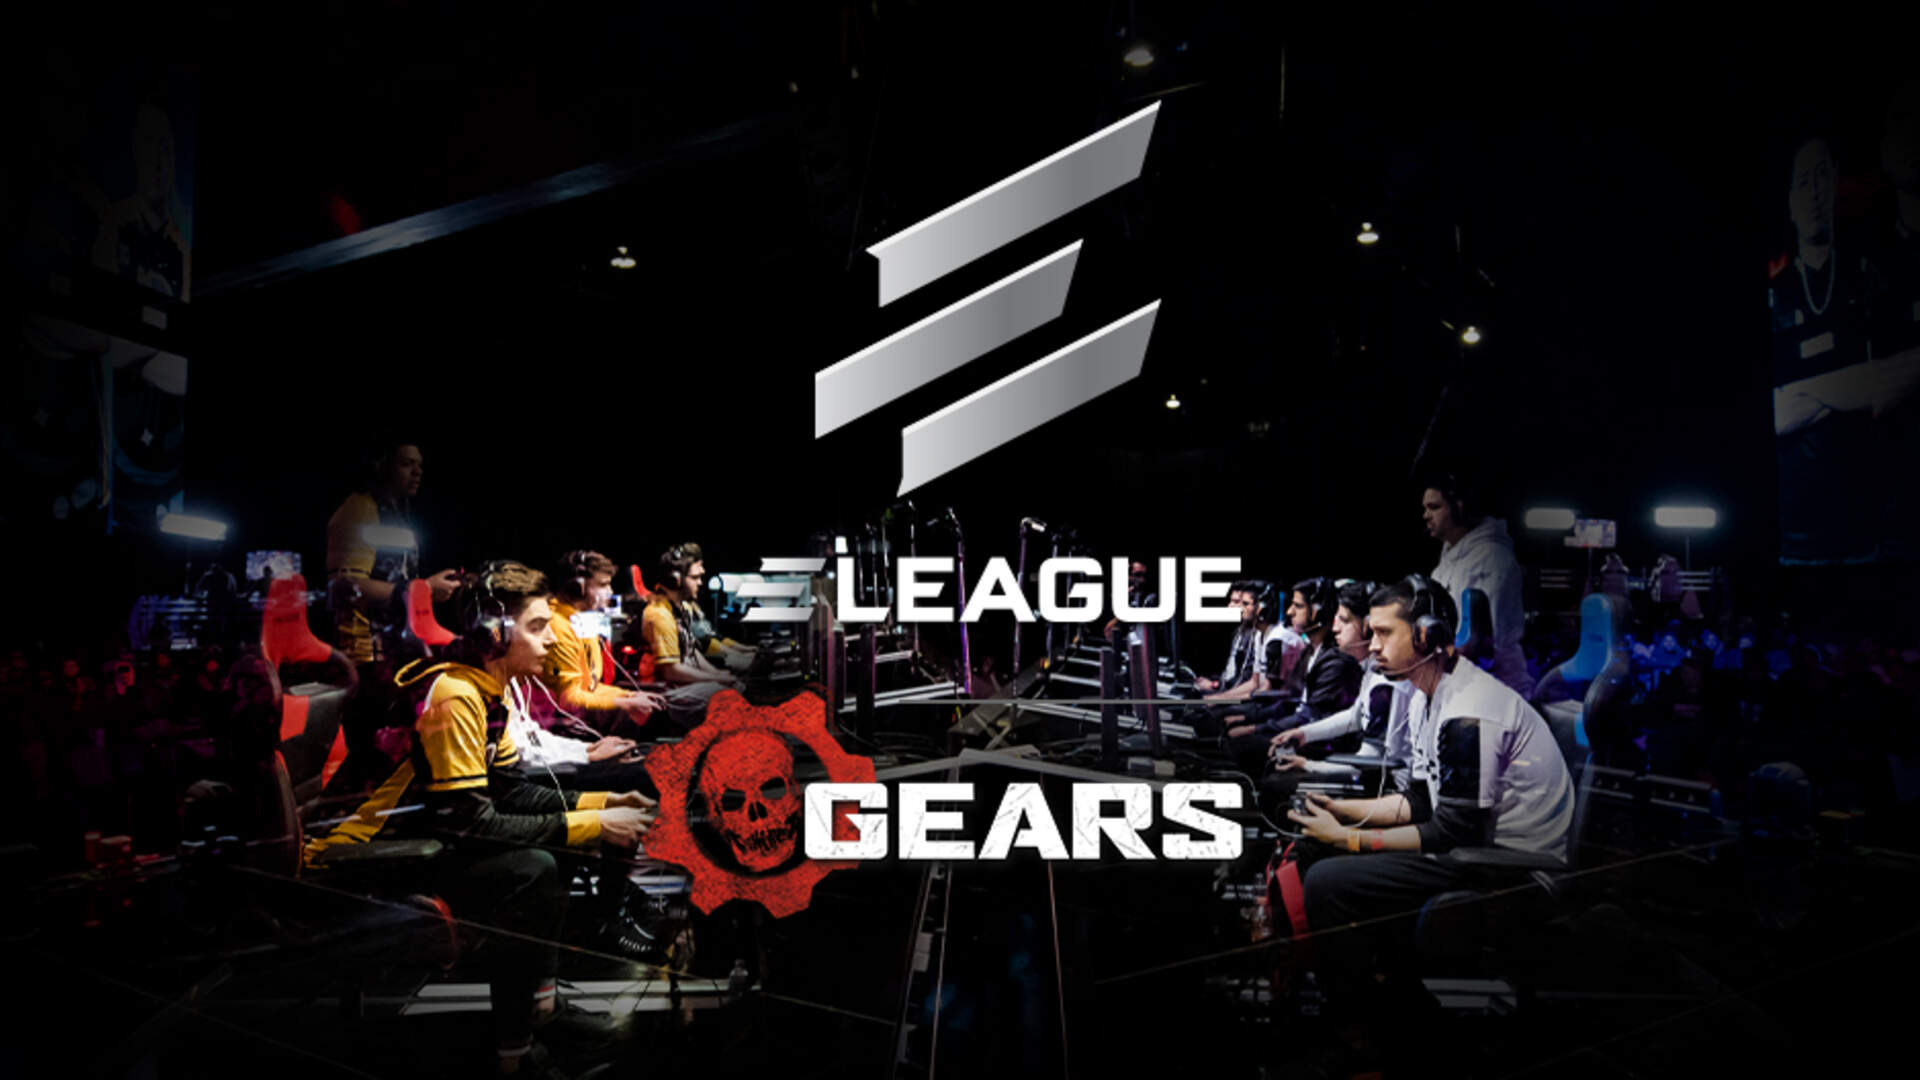 Gears of War Esports League Will Reveal Gears 5 Multiplayer This Summer